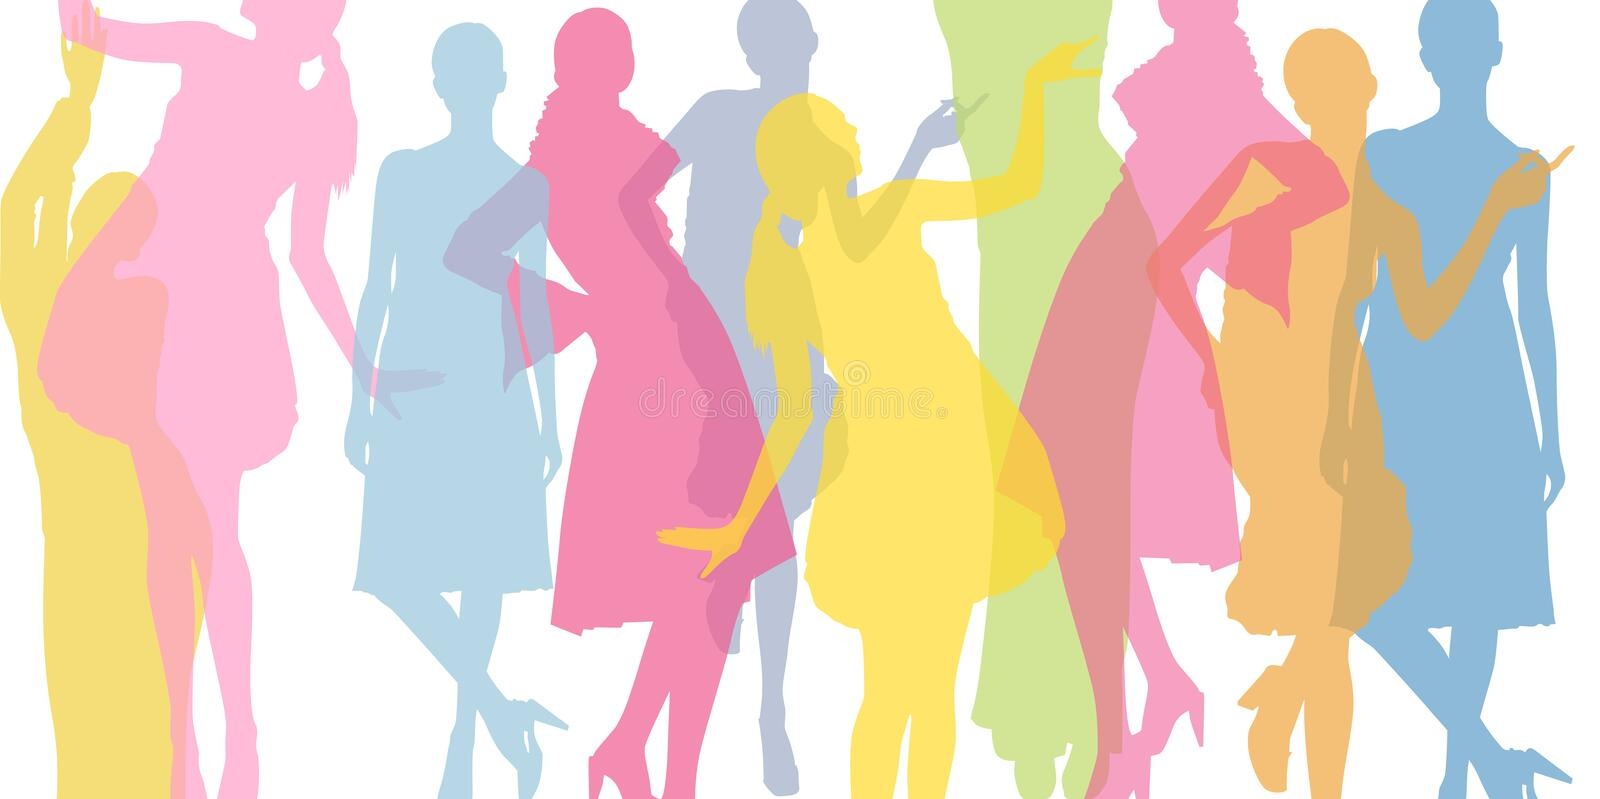 Fashion colorful background. Transparent colored silhouettes of girls. stock illustration